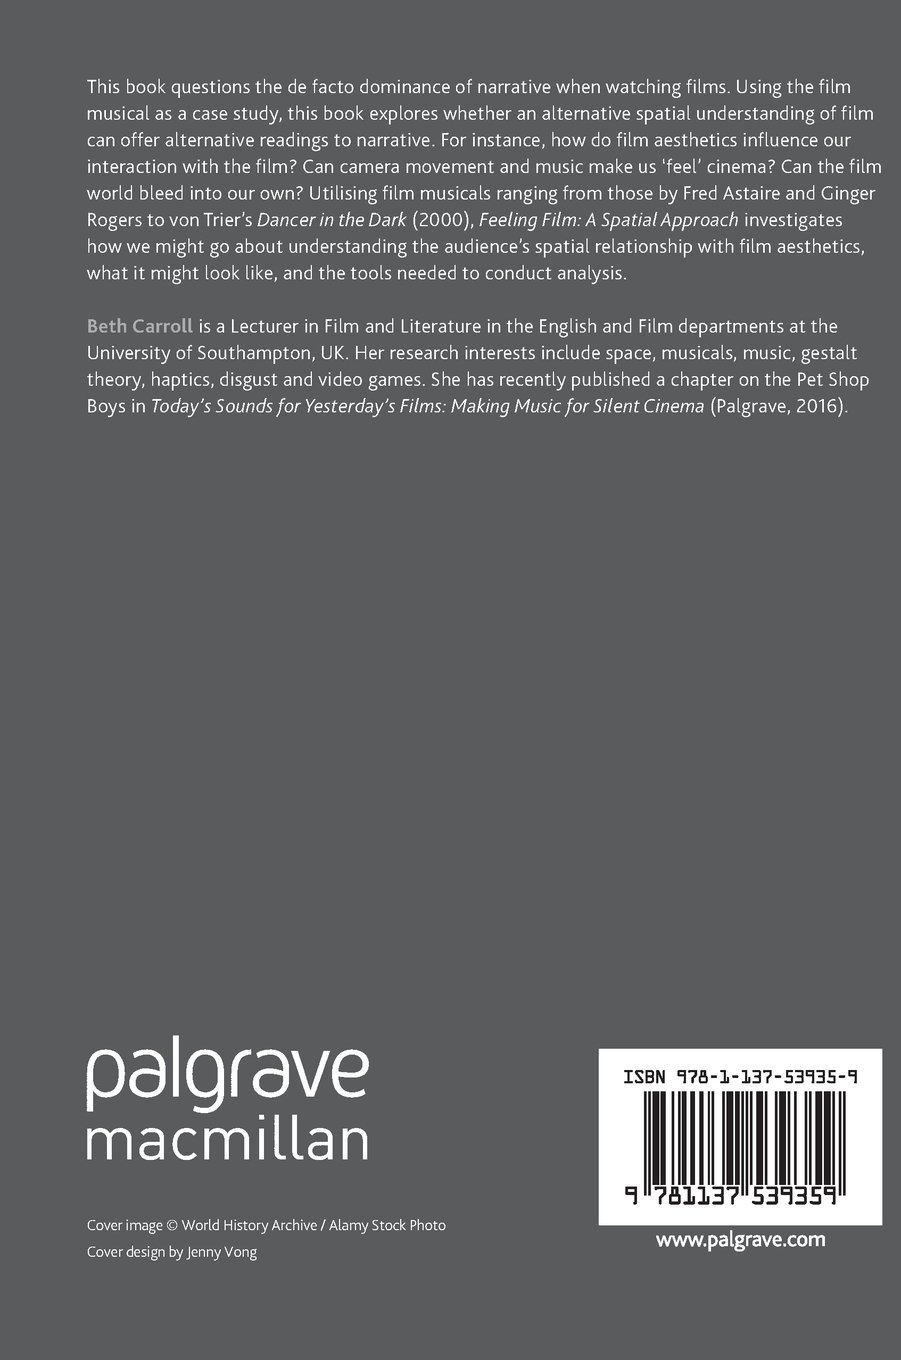 Feeling Film: A Spatial Approach (Palgrave Studies in Audio-Visual Culture) by Palgrave Macmillan